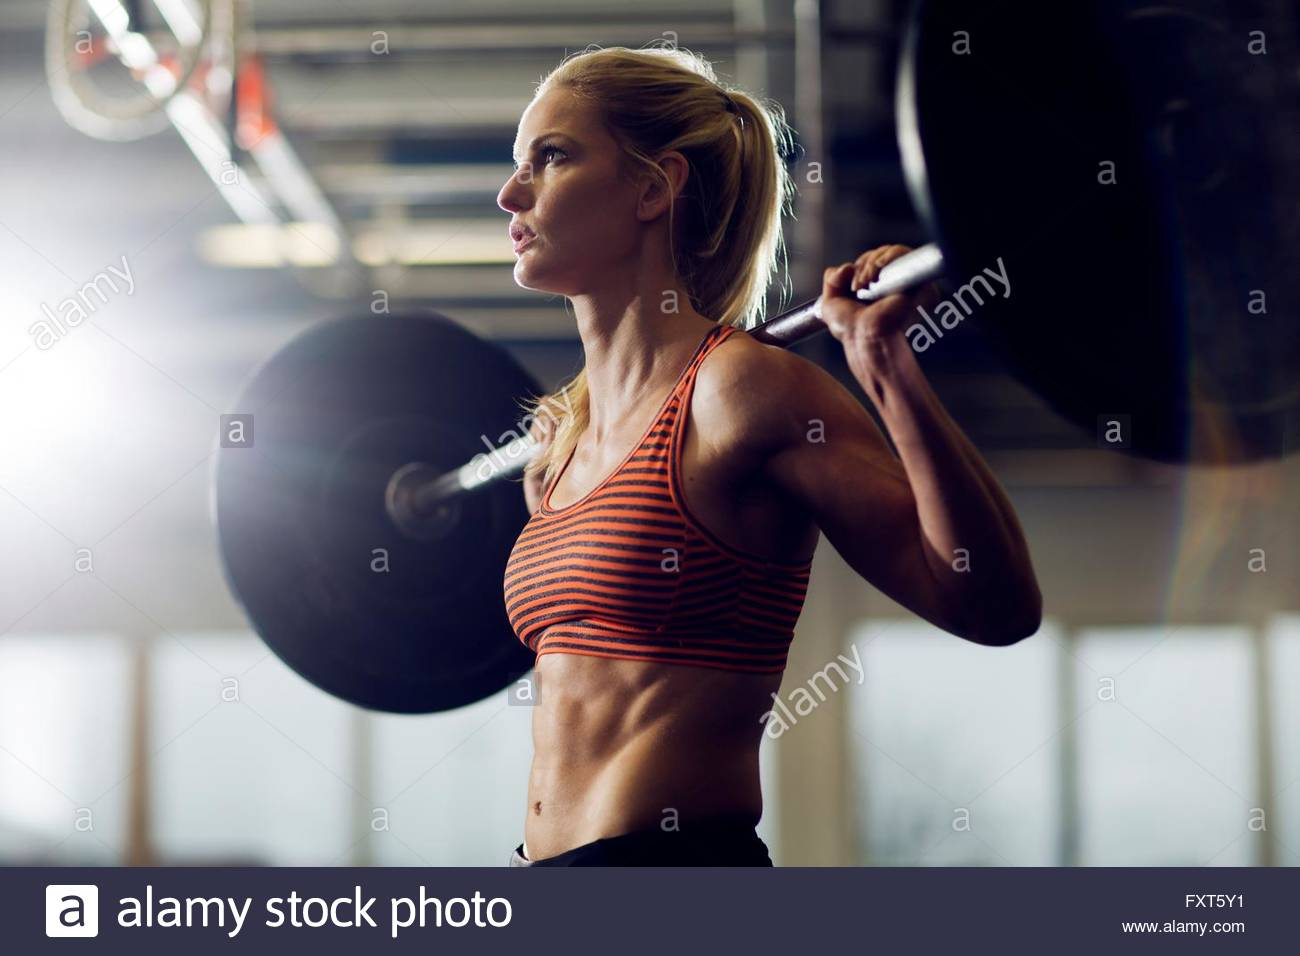 Mid adult woman lifting barbell on shoulders in gym - Stock Image